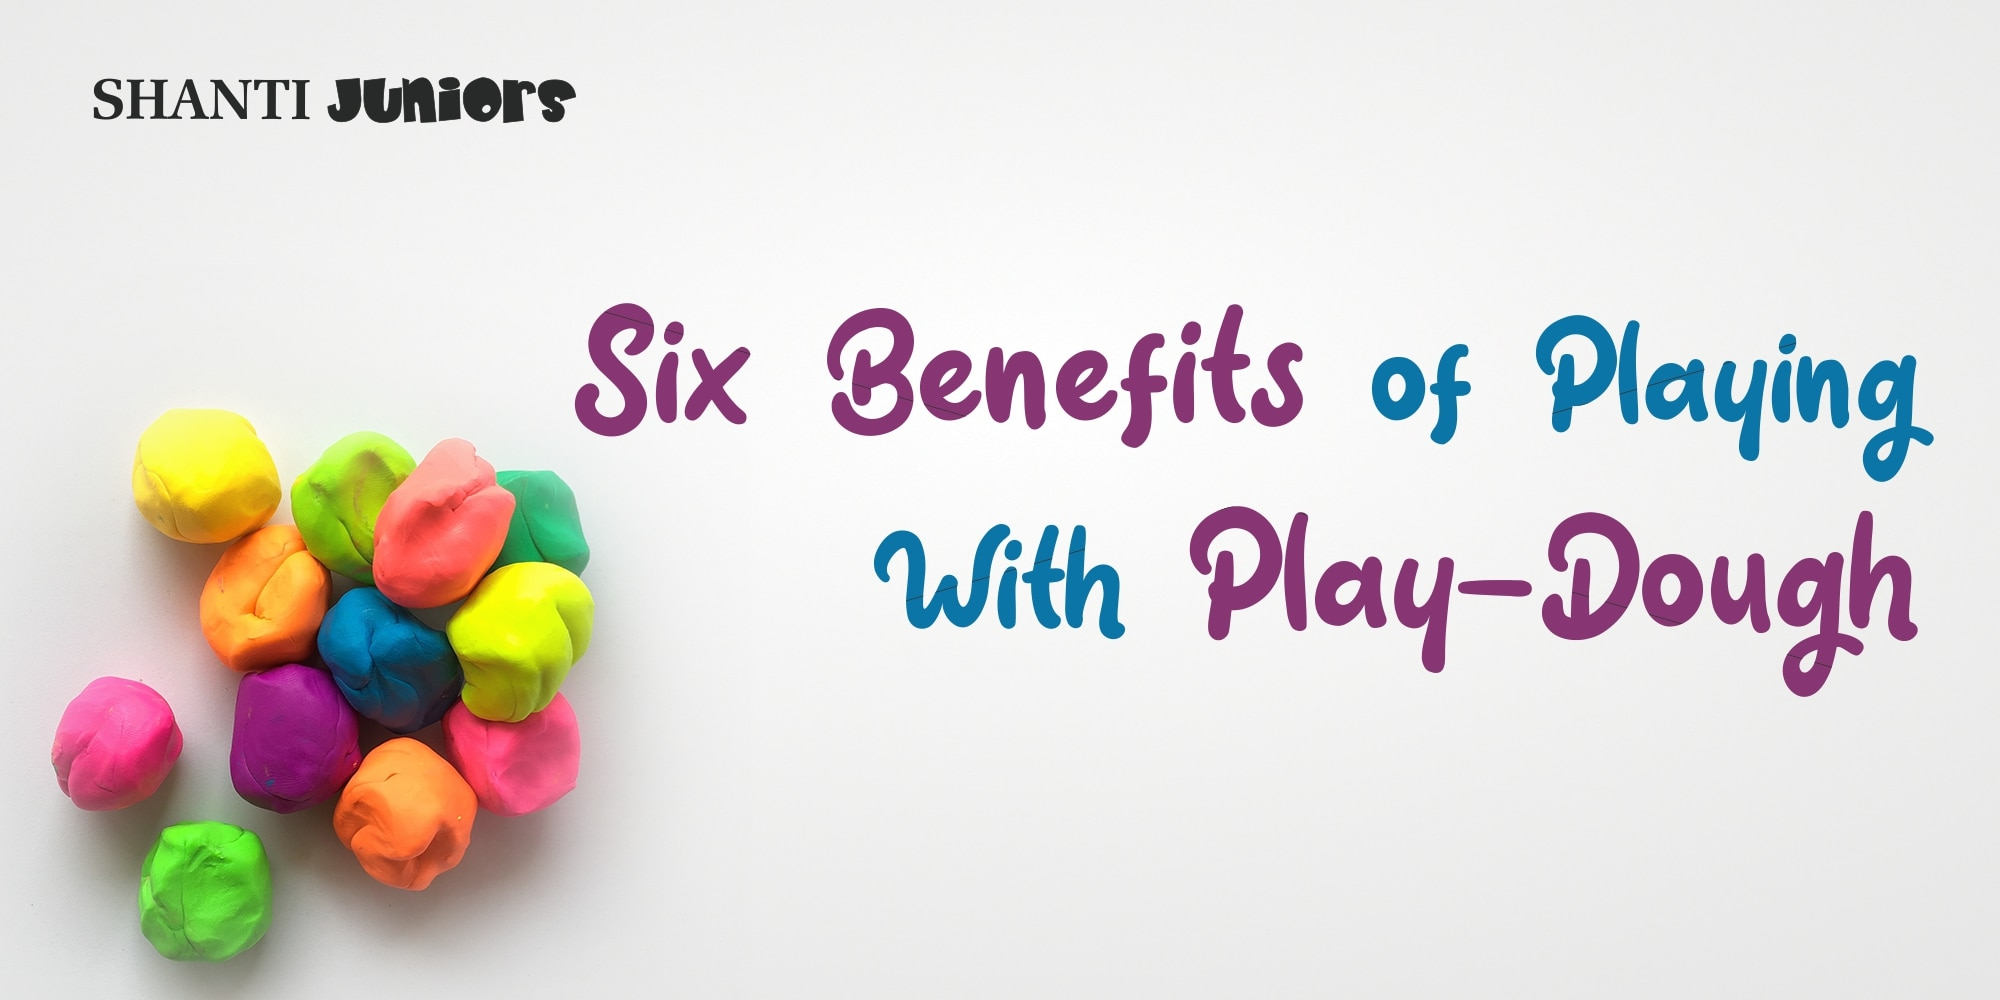 Six Benefits of Playing With Play-Dough